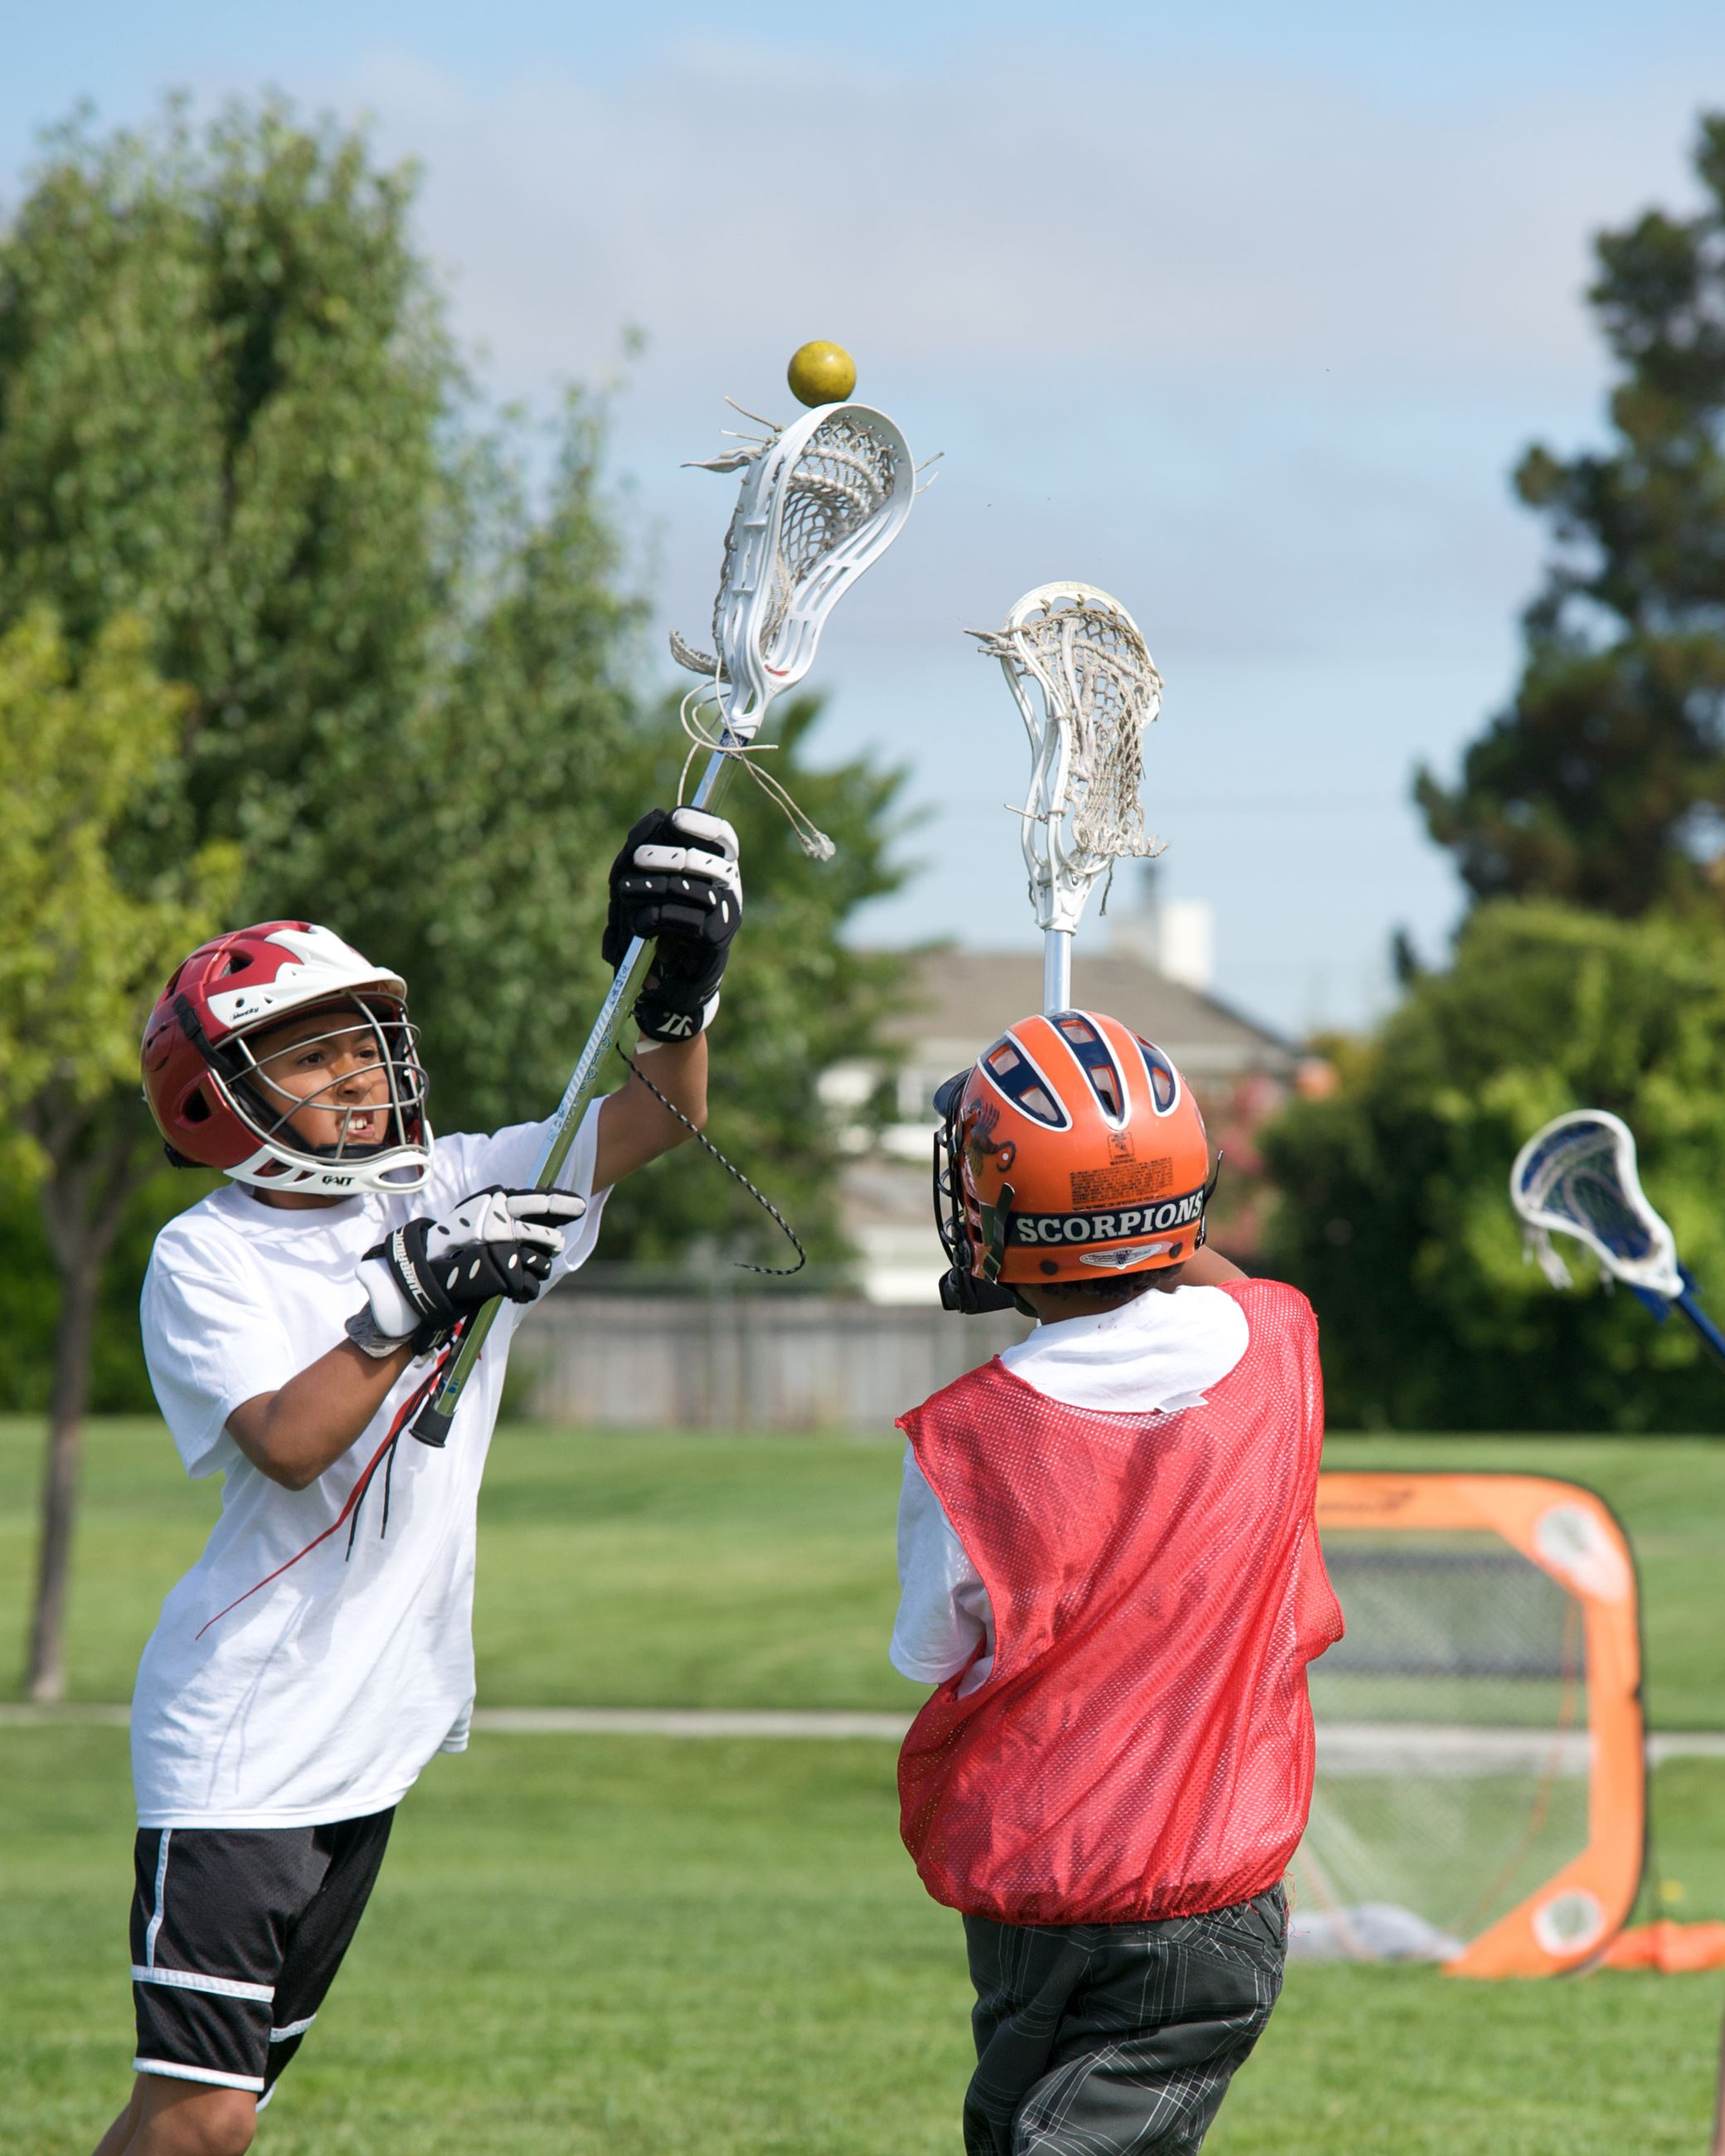 lacrosse passing the ball